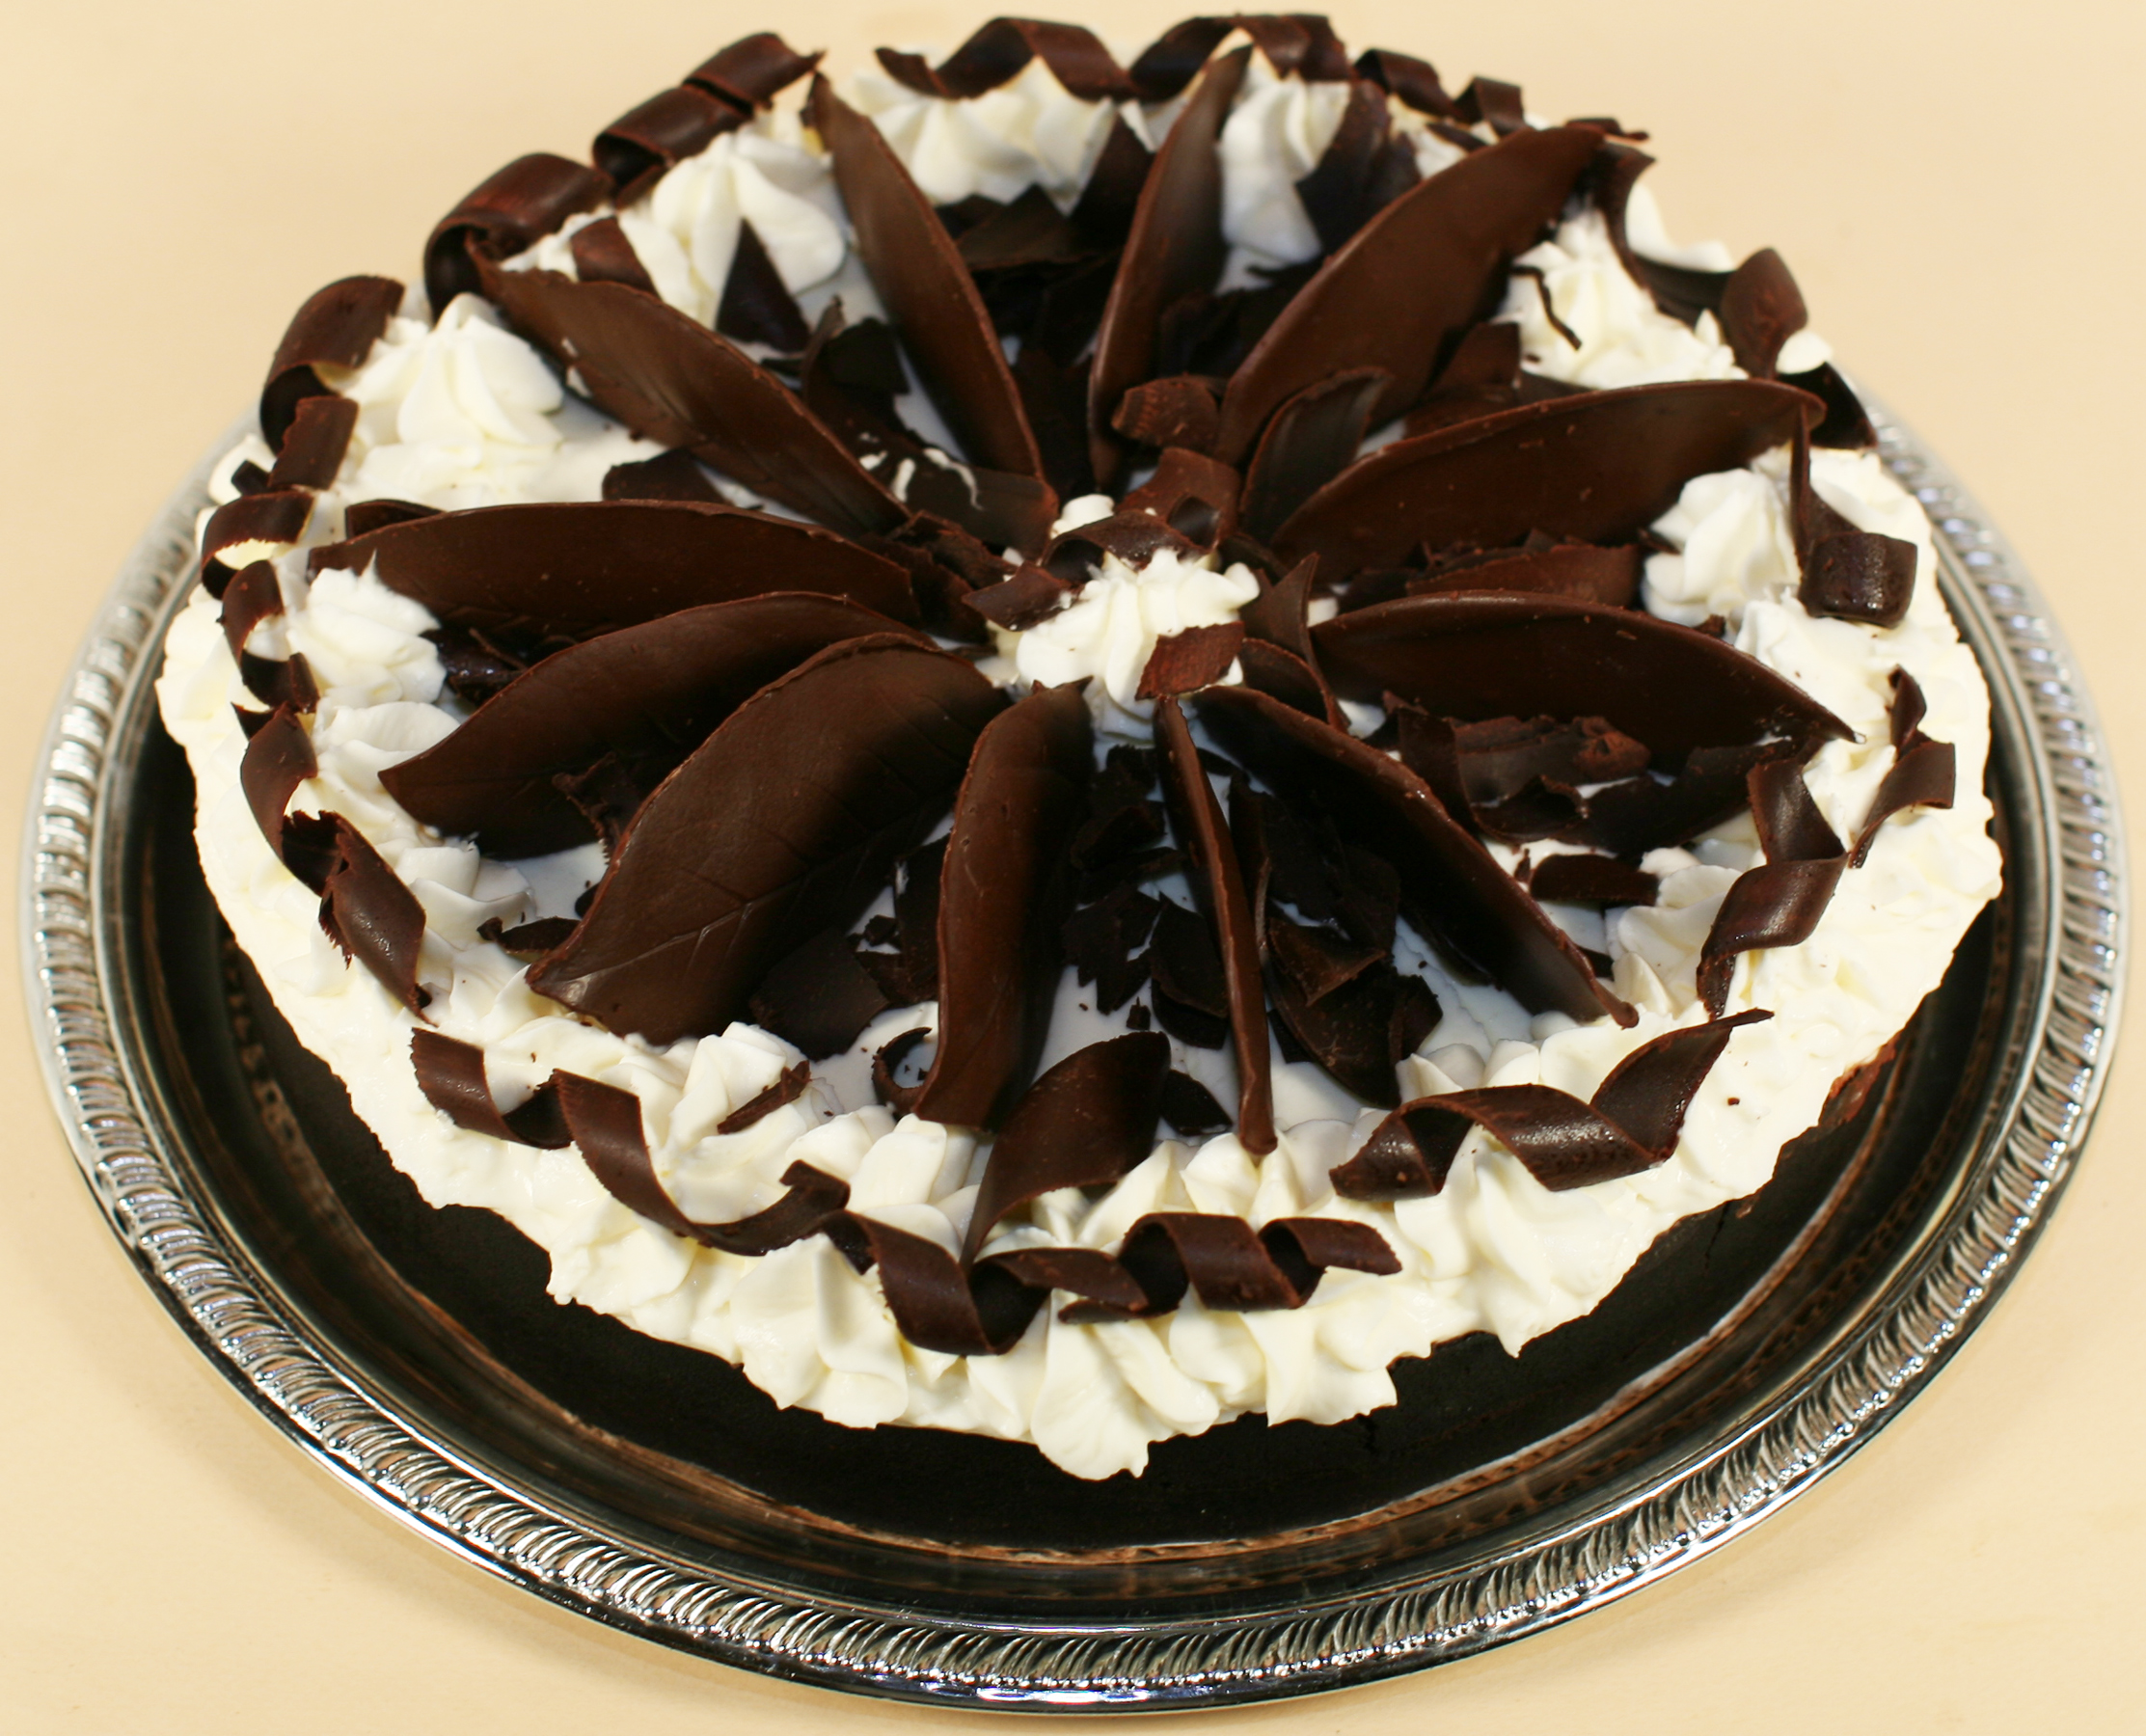 a-CHOCOLATE MOUSSE CAKE